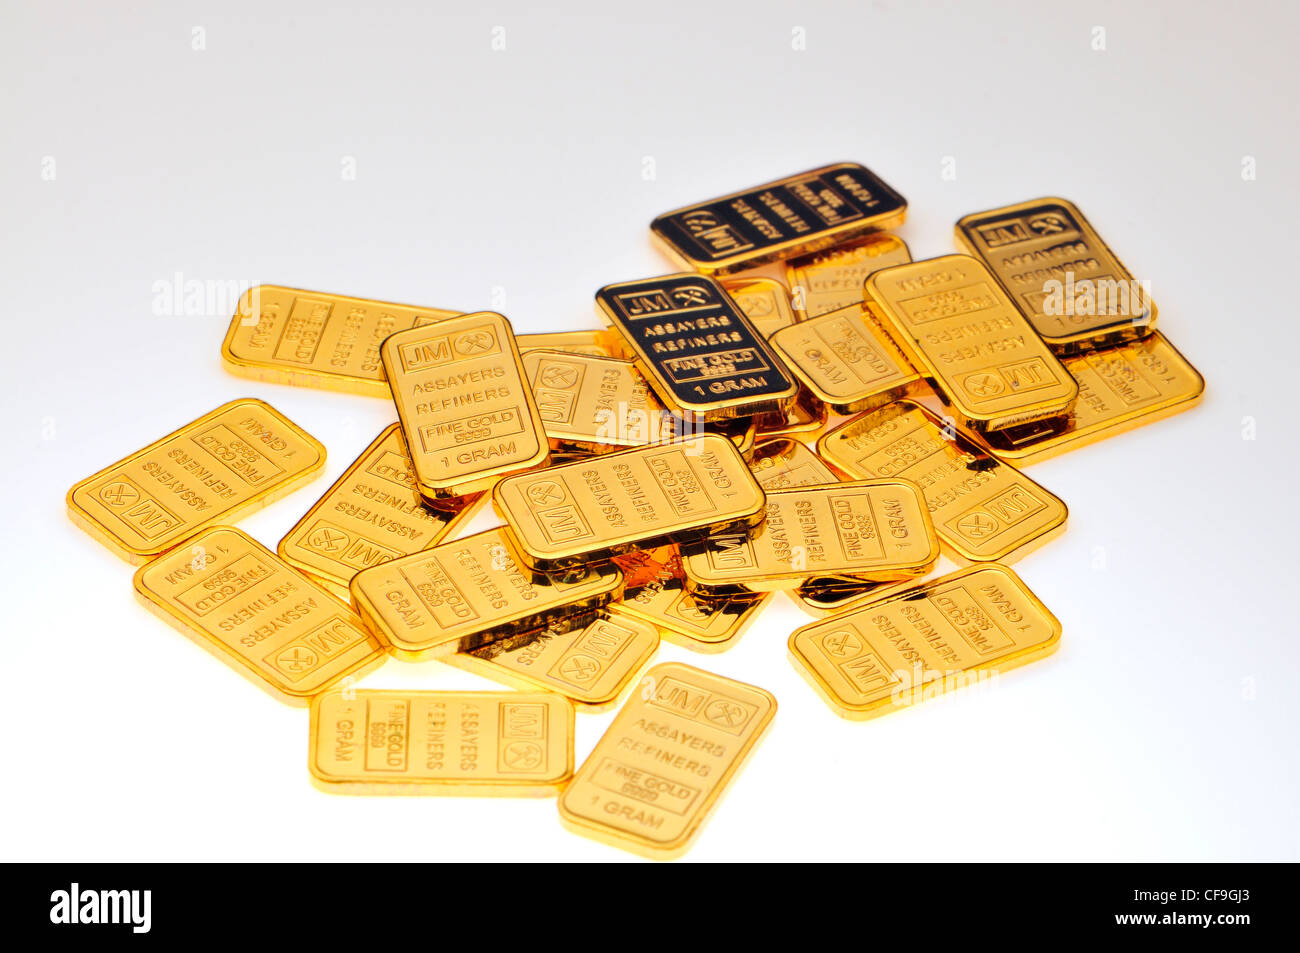 Small 1g Gold bars / ingot (plated replicas) - Stock Image